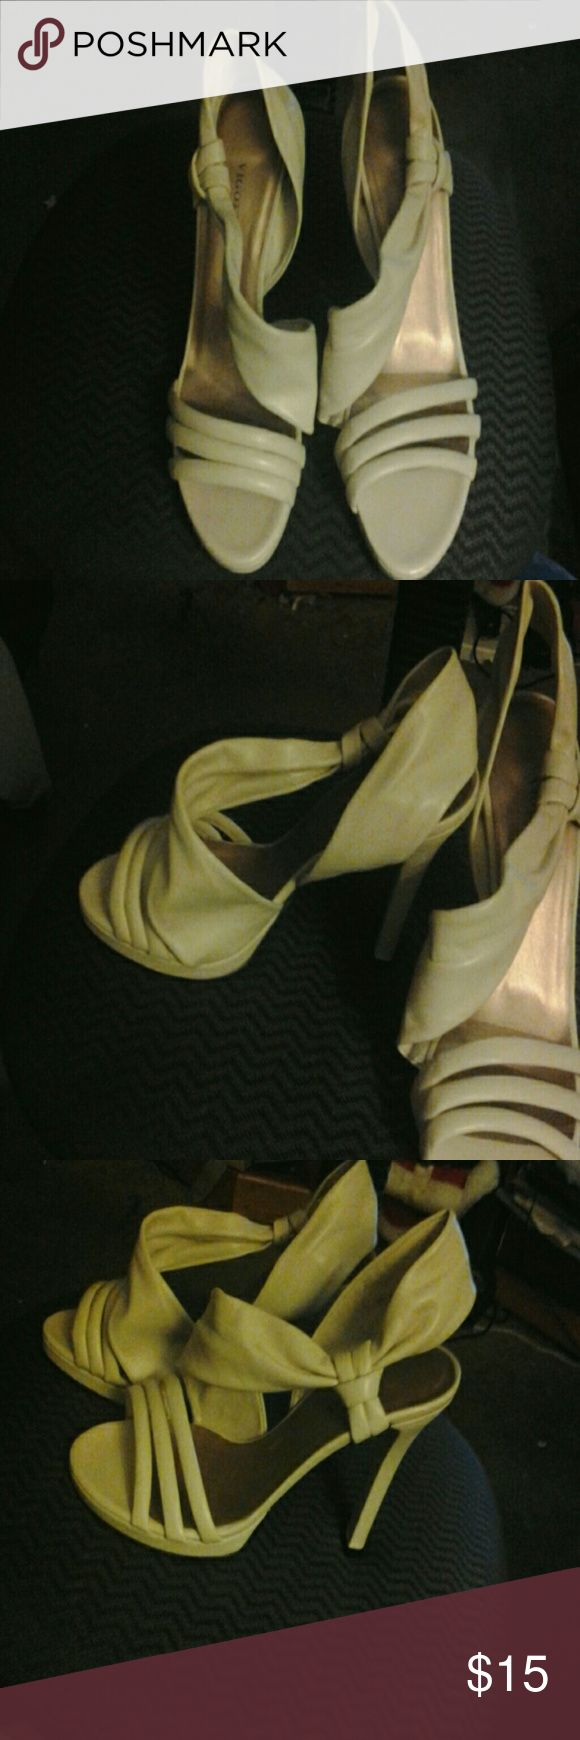 Ladies open toe high heel shoe Super cute. Off white these have 3 straps that go across top of foot. It has a wrap around back strao that is adjustable  by sliding through side loop.  It has an approx.  4  1/2 inch heel size 9w Vigotti Shoes Heels